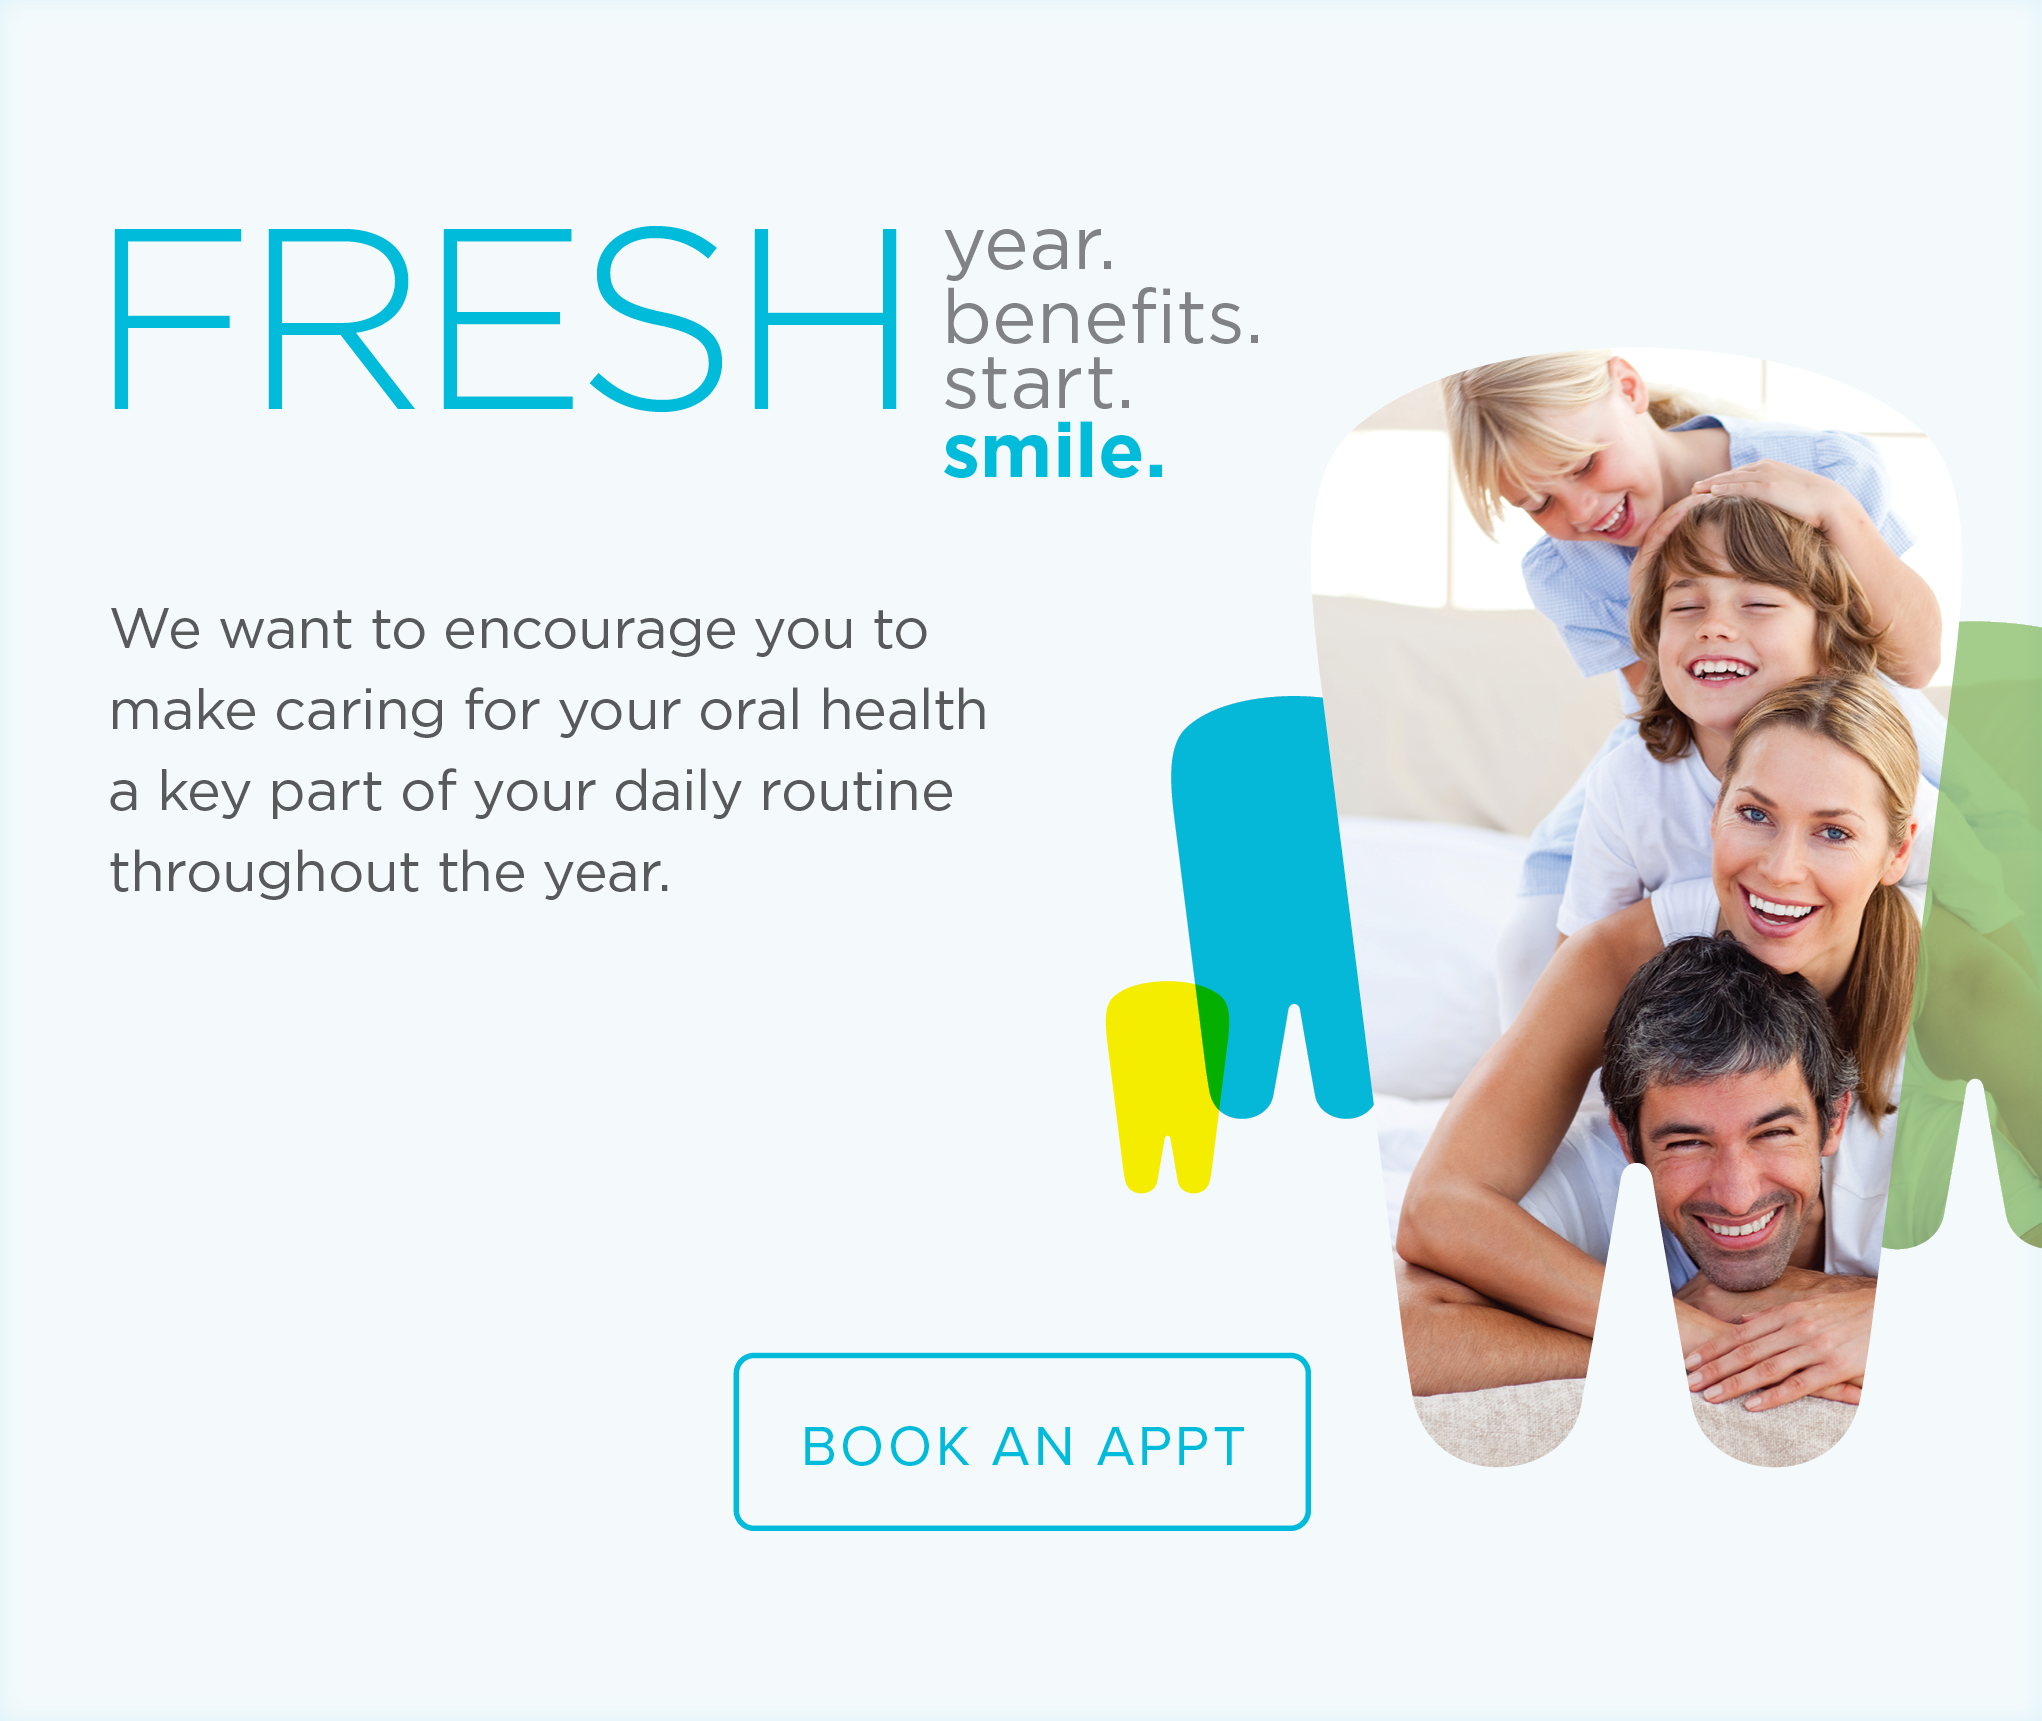 Desert Crossing Dental Group and Orthodontics - Make the Most of Your Benefits